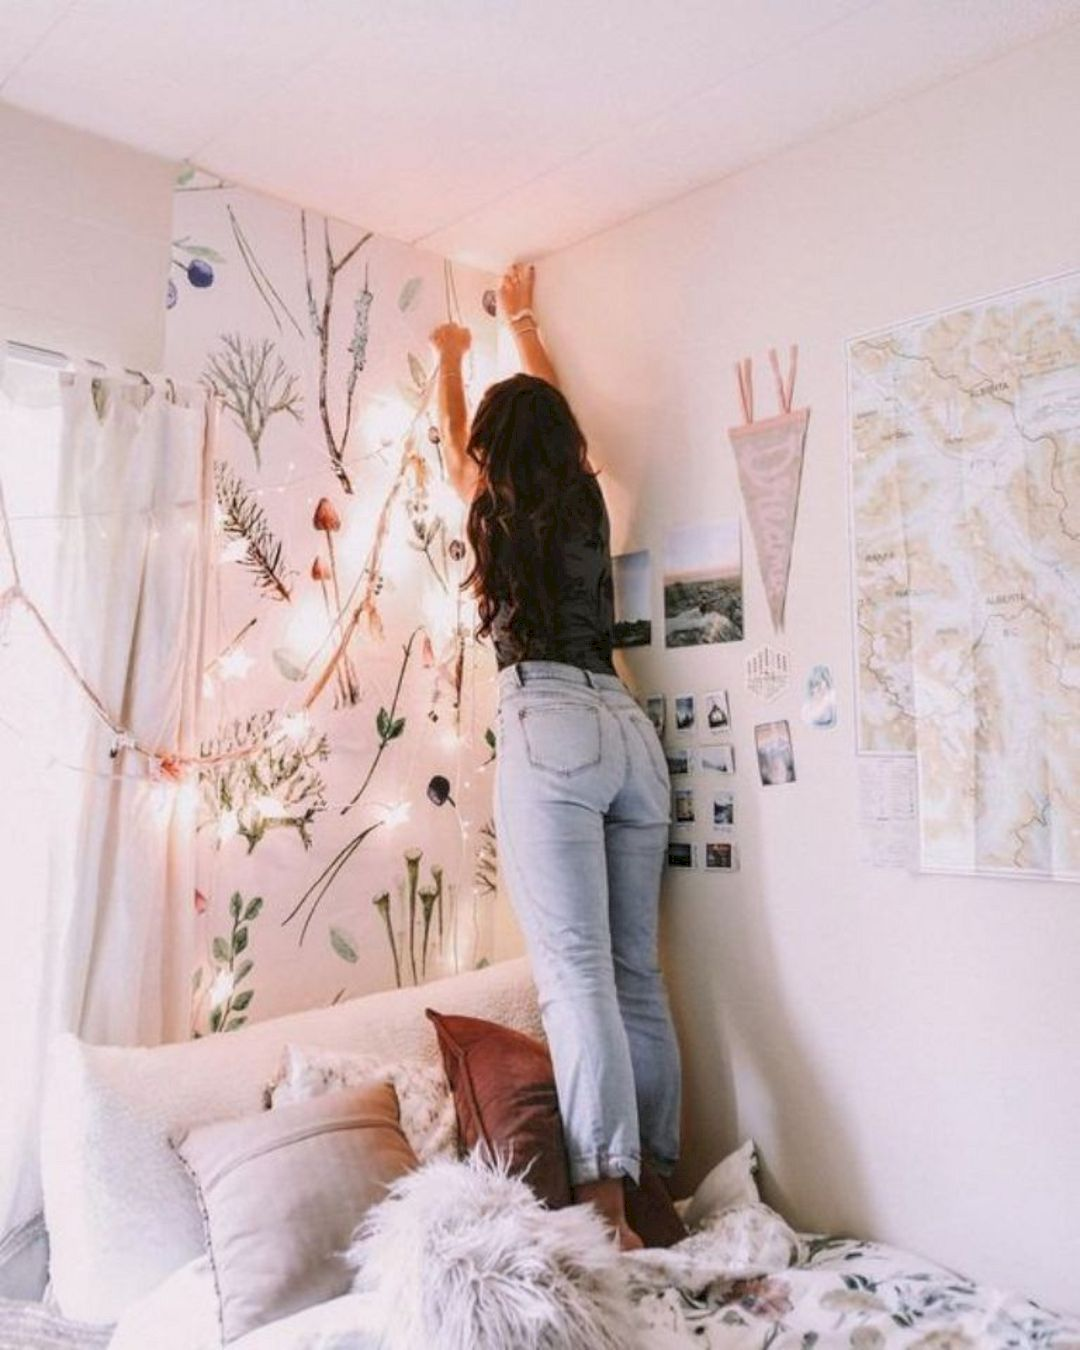 16 Cool Dorm Room Decorating Ideas Https://www.futuristarchitecture.com/